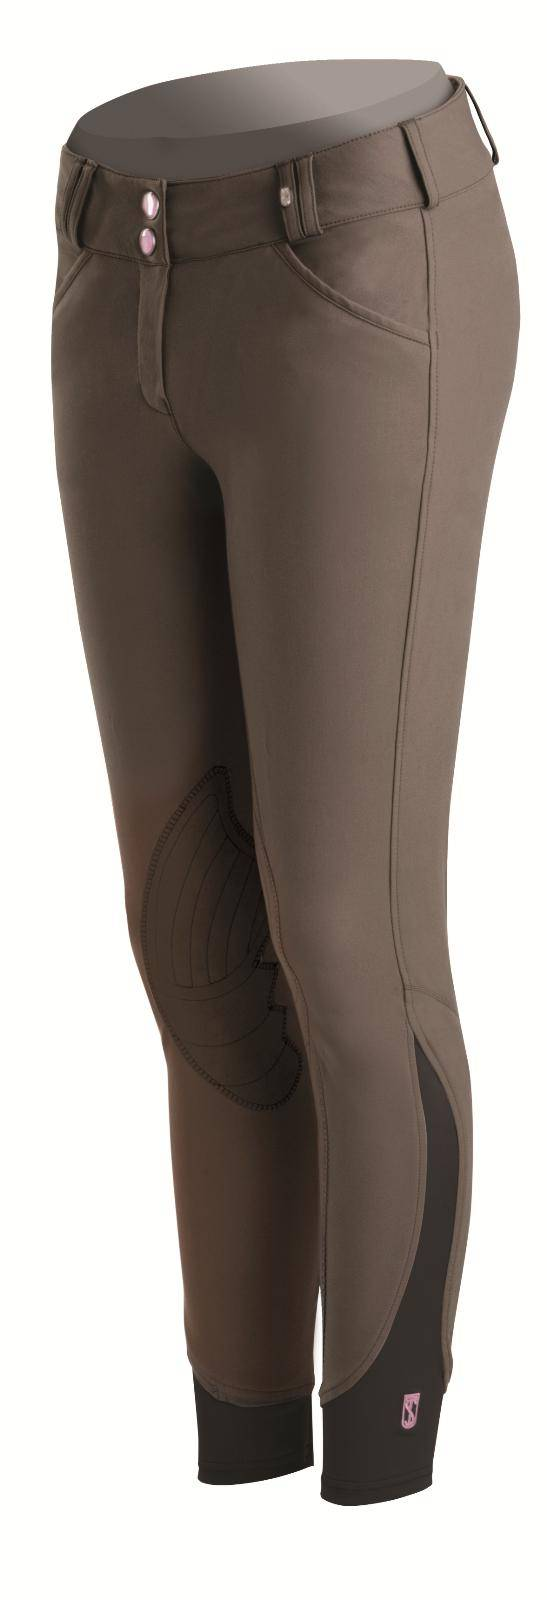 Outlet - Tredstep Rosa Knee Patch Breeches - Ladies, 34 Long, Truffle